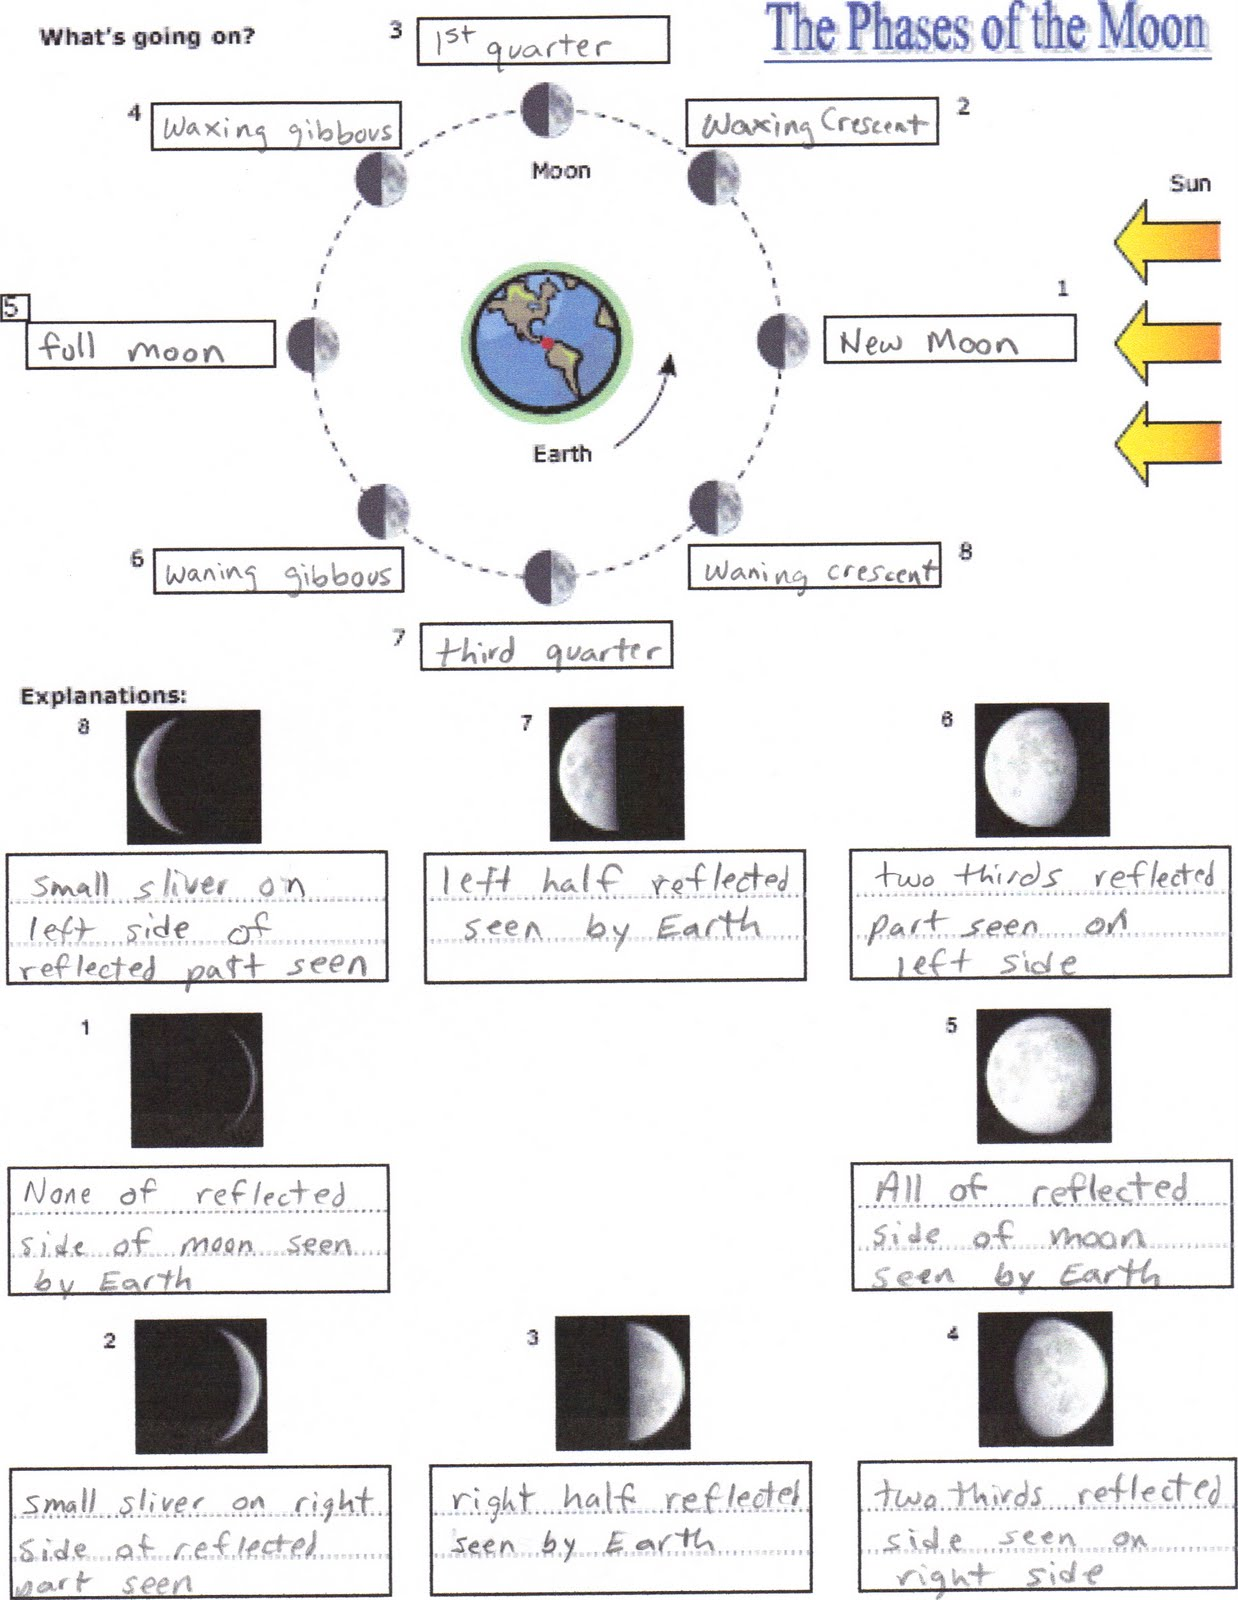 moon phases worksheet new calendar template site. Black Bedroom Furniture Sets. Home Design Ideas